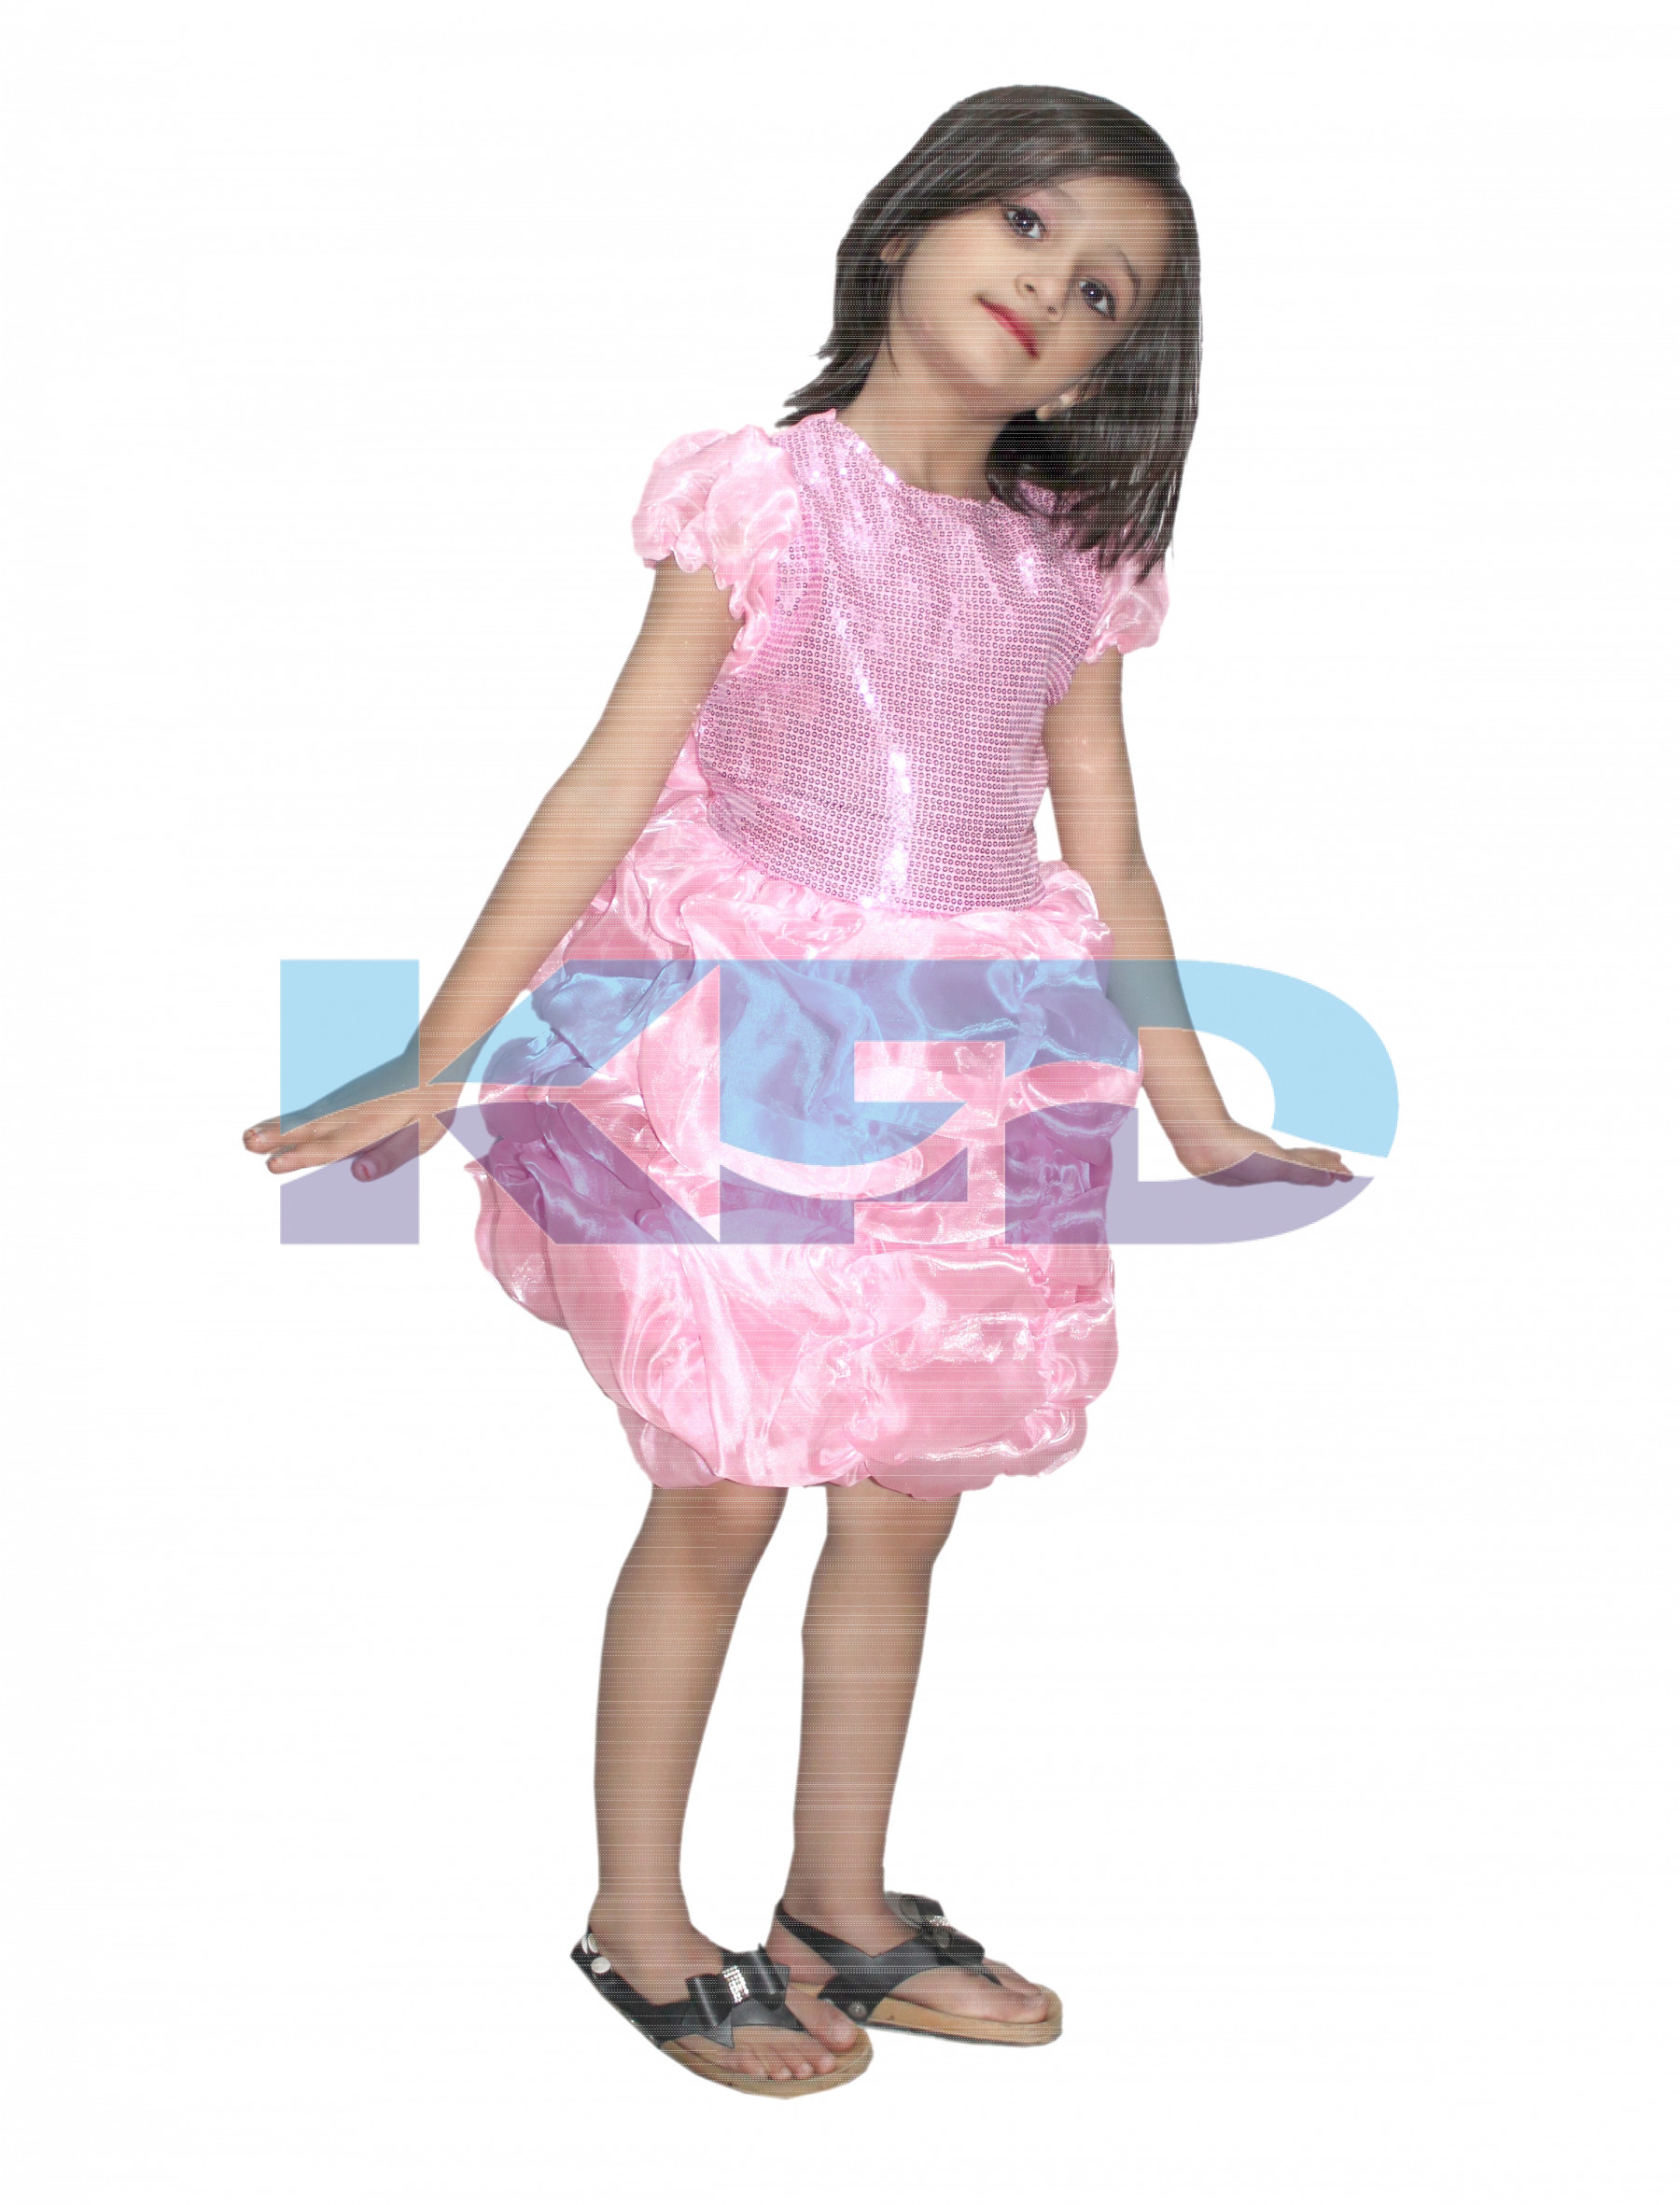 a748ff85 Barbie Girl fancy dress for kids,Fairy Teles Costume for Annual  function/Theme Party/Competition/Stage Shows/Birthday Party Dress